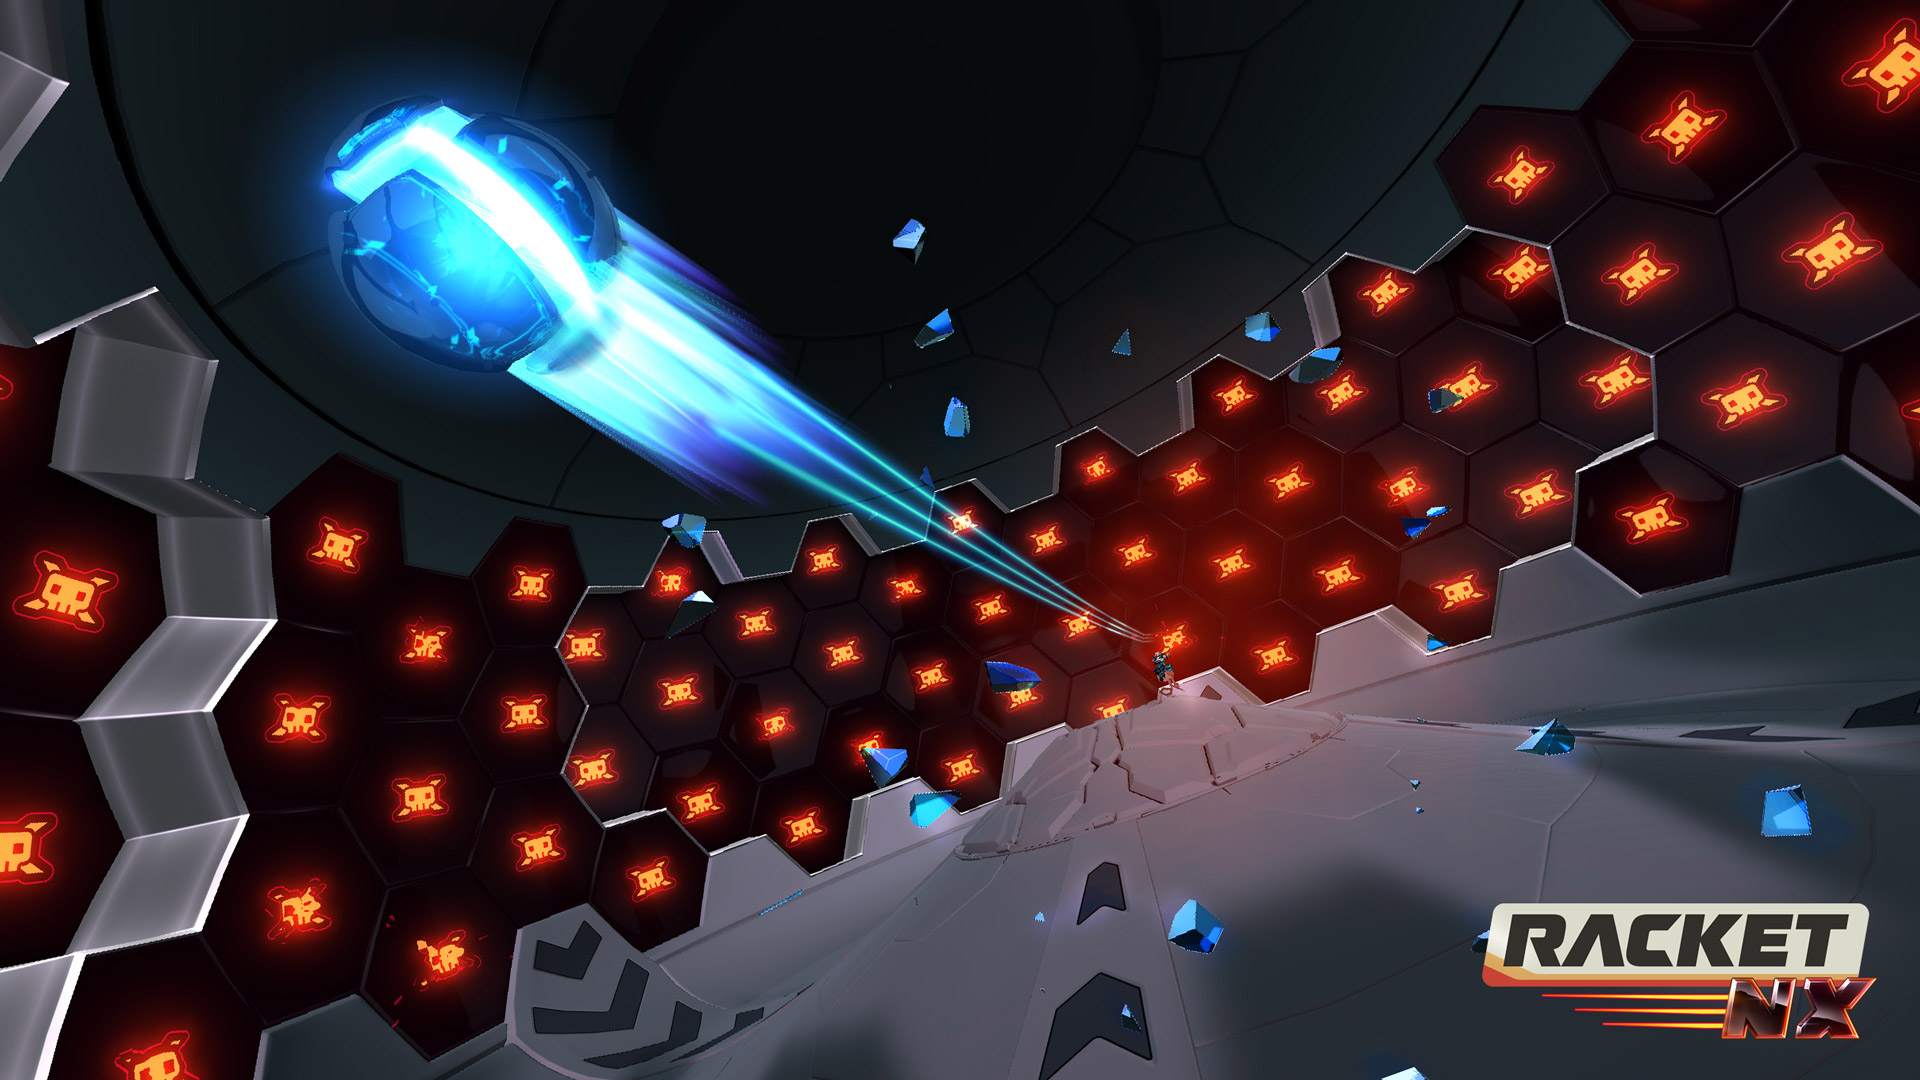 Review: 'Racket: NX' Brings Addictive Gameplay & Polished Visuals ...